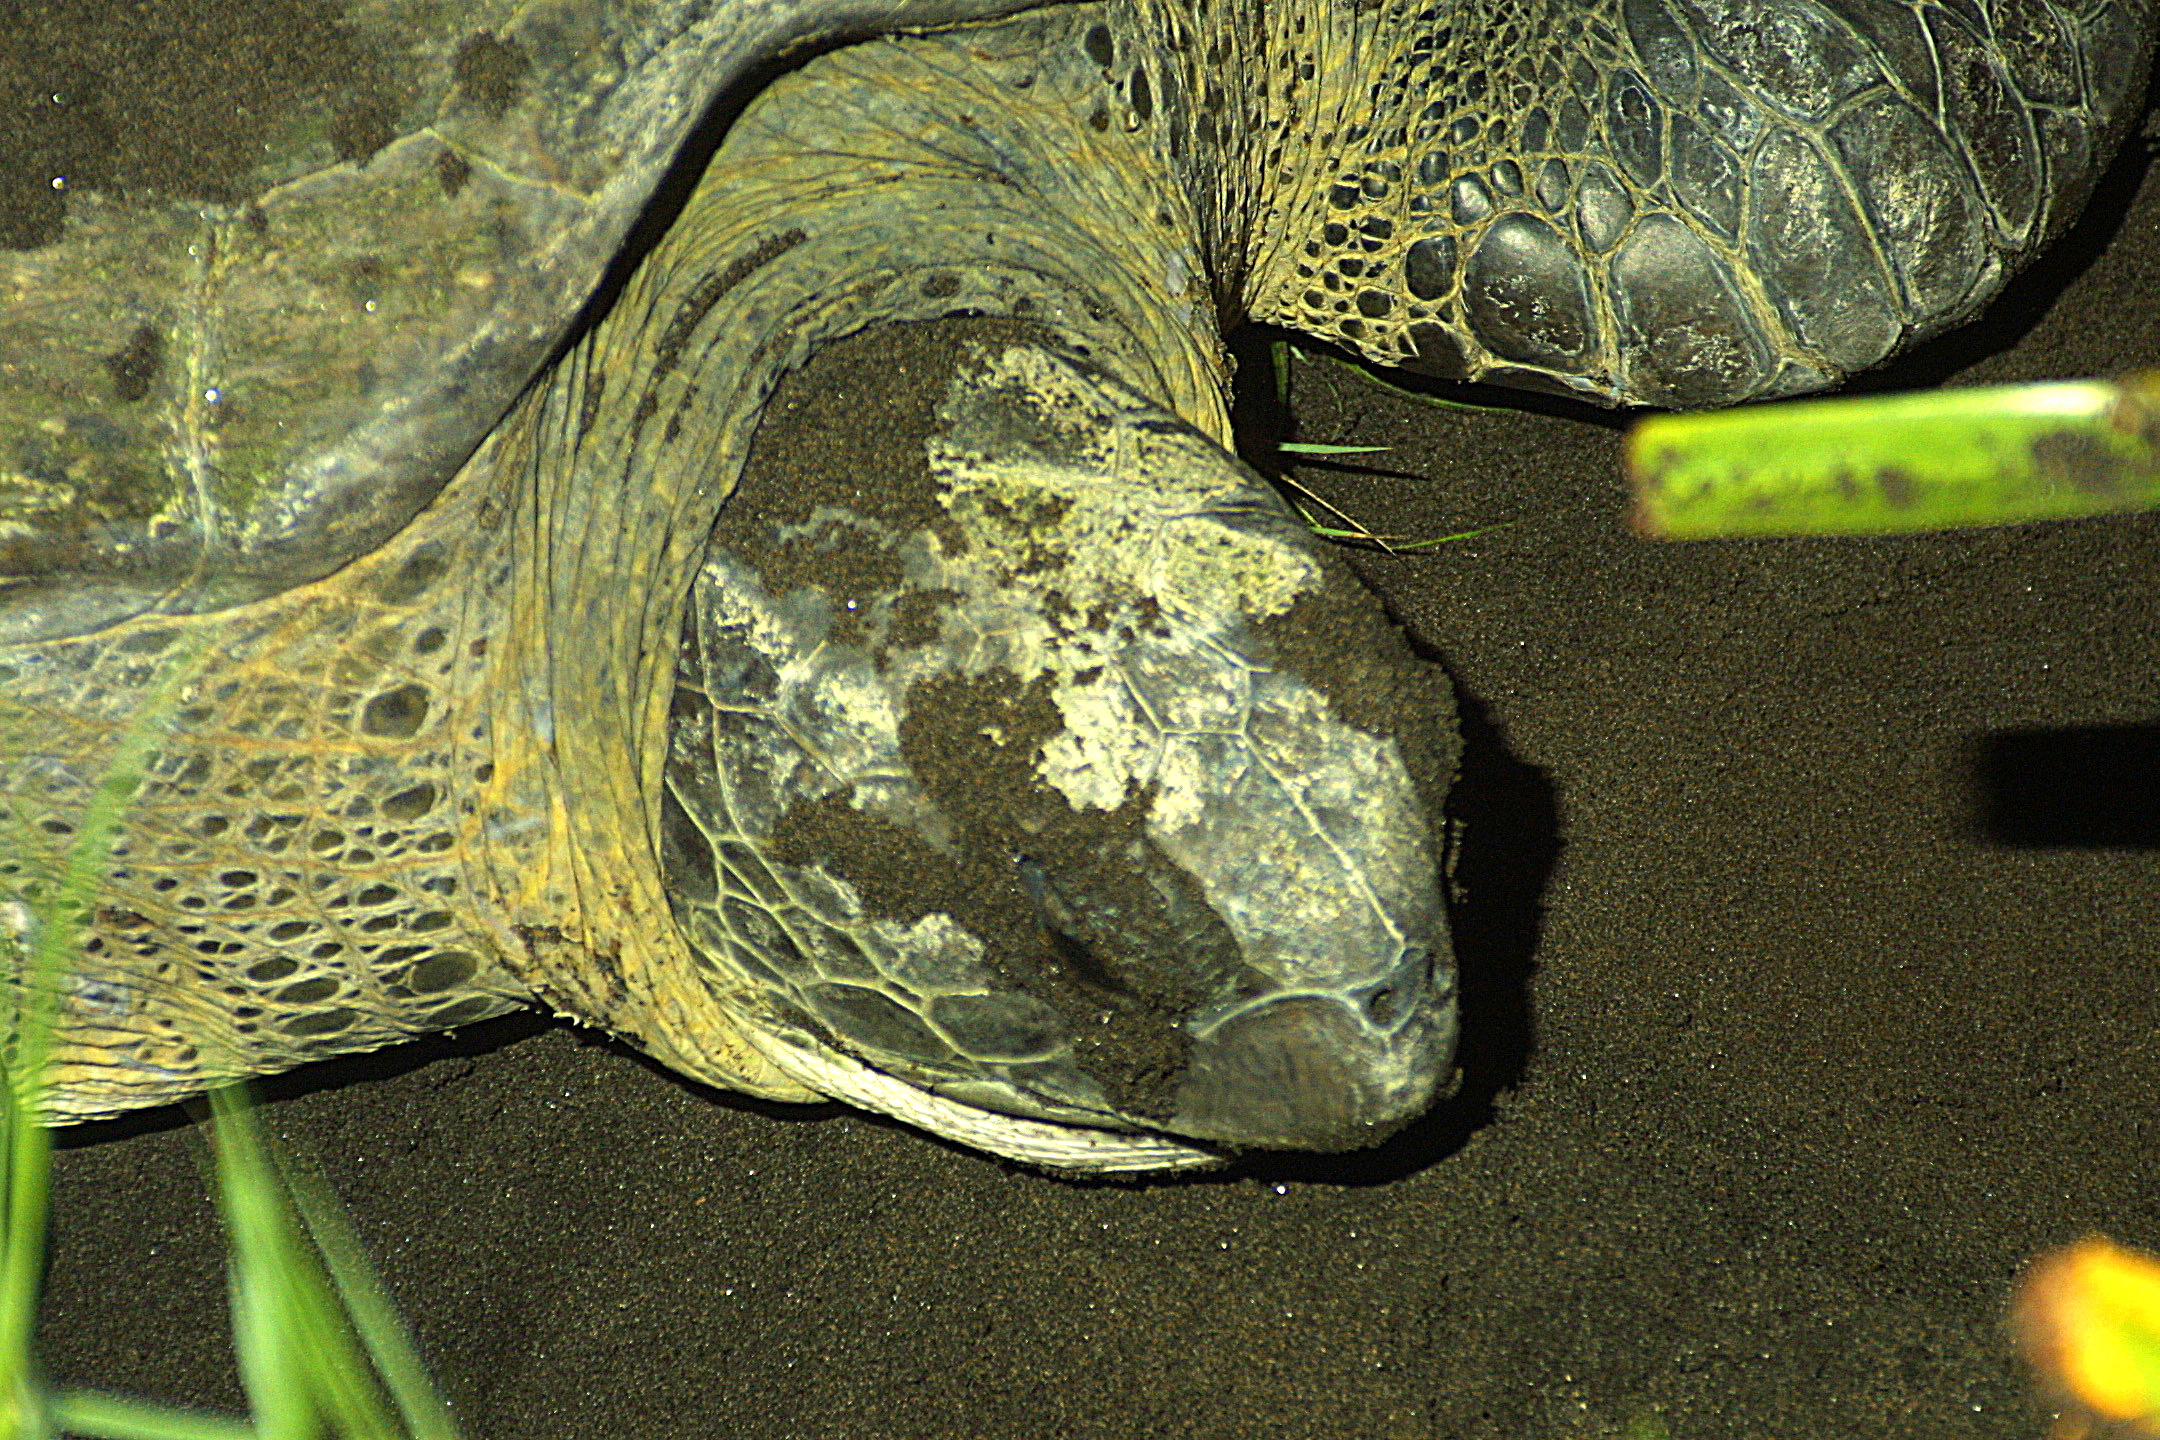 turtle head close up